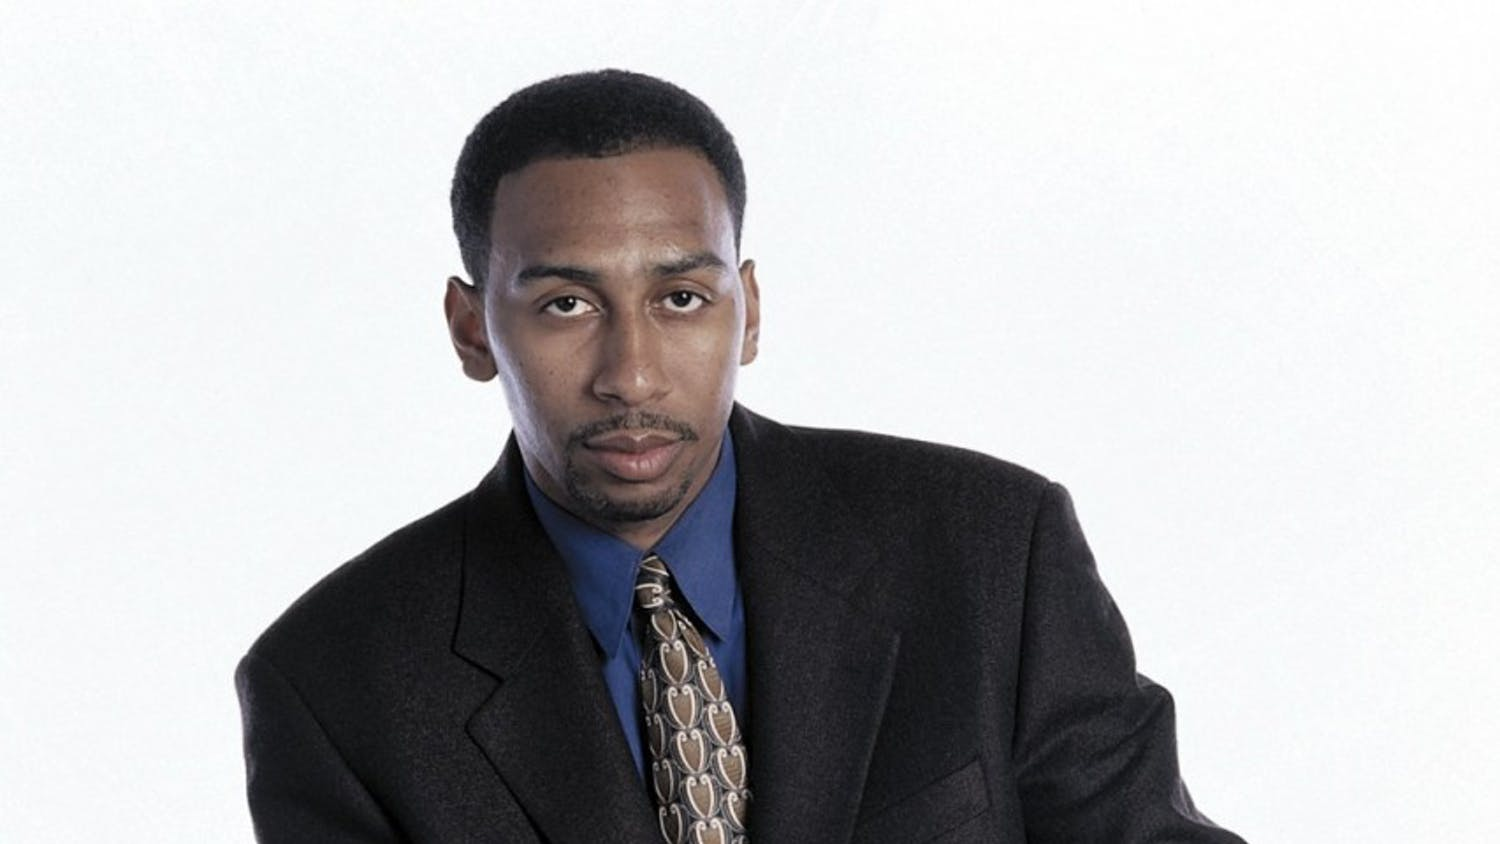 KRT SPORTS STORY SLUGGED: BKN-SMITH-SPORTSPLUS KRT PHOTO BY PHILADELPHIA INQUIRER (April 21) Stephen A. Smith is a sports columnist for the Philadelphia Inquirer and commentator for ESPN. (gsb) 2004